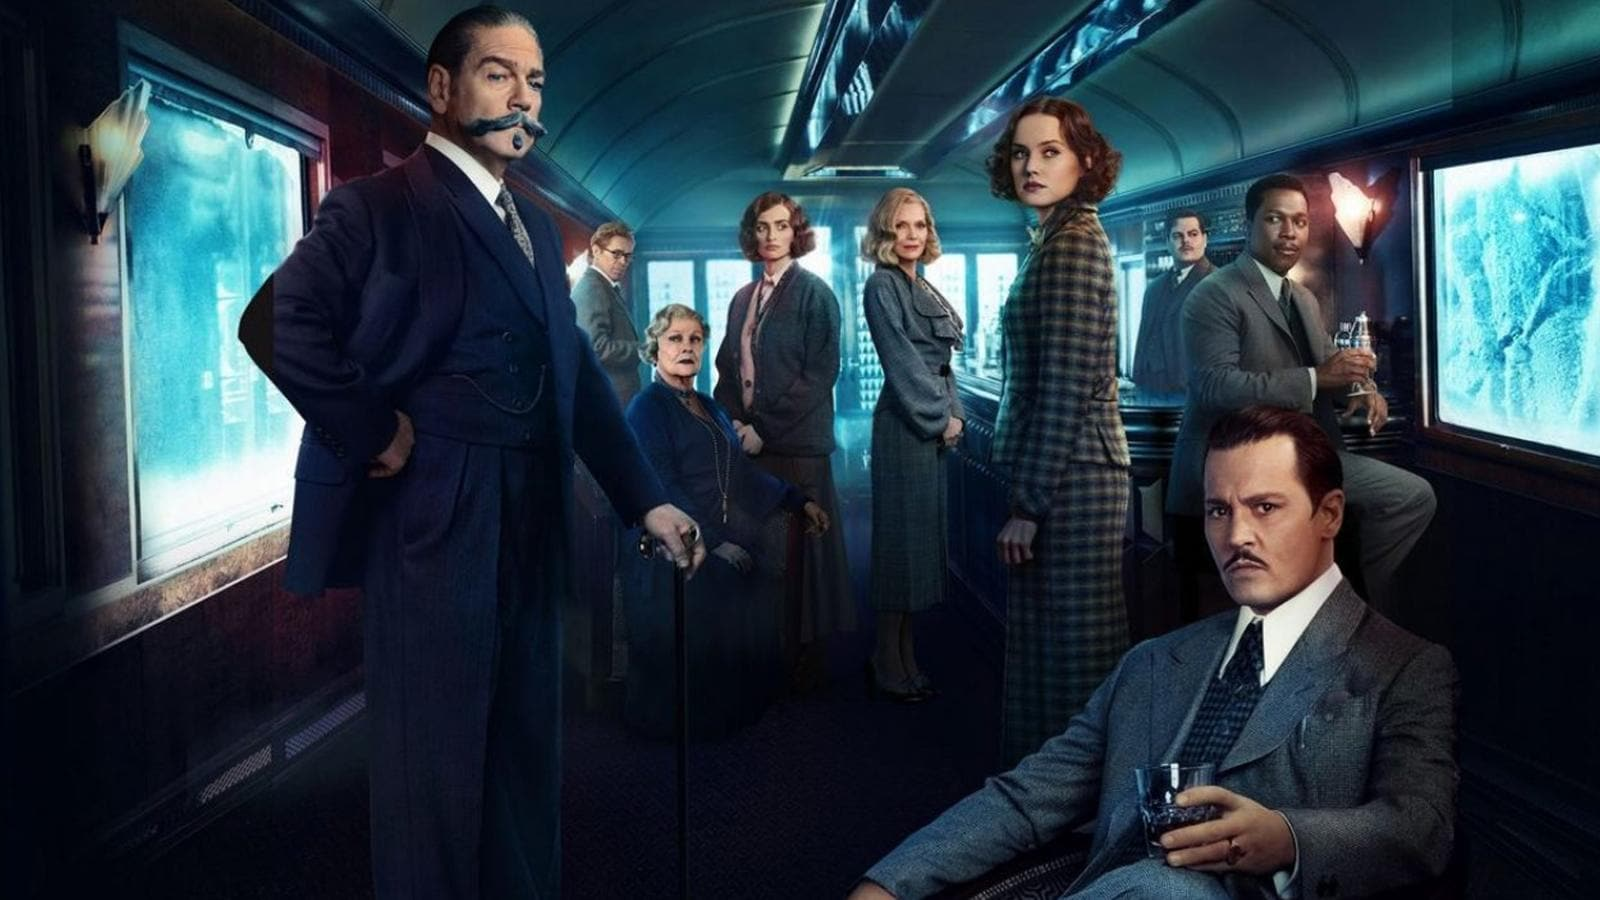 Assassinio sull'Orient Express: trama, cast e anticipazioni film su Rai 1